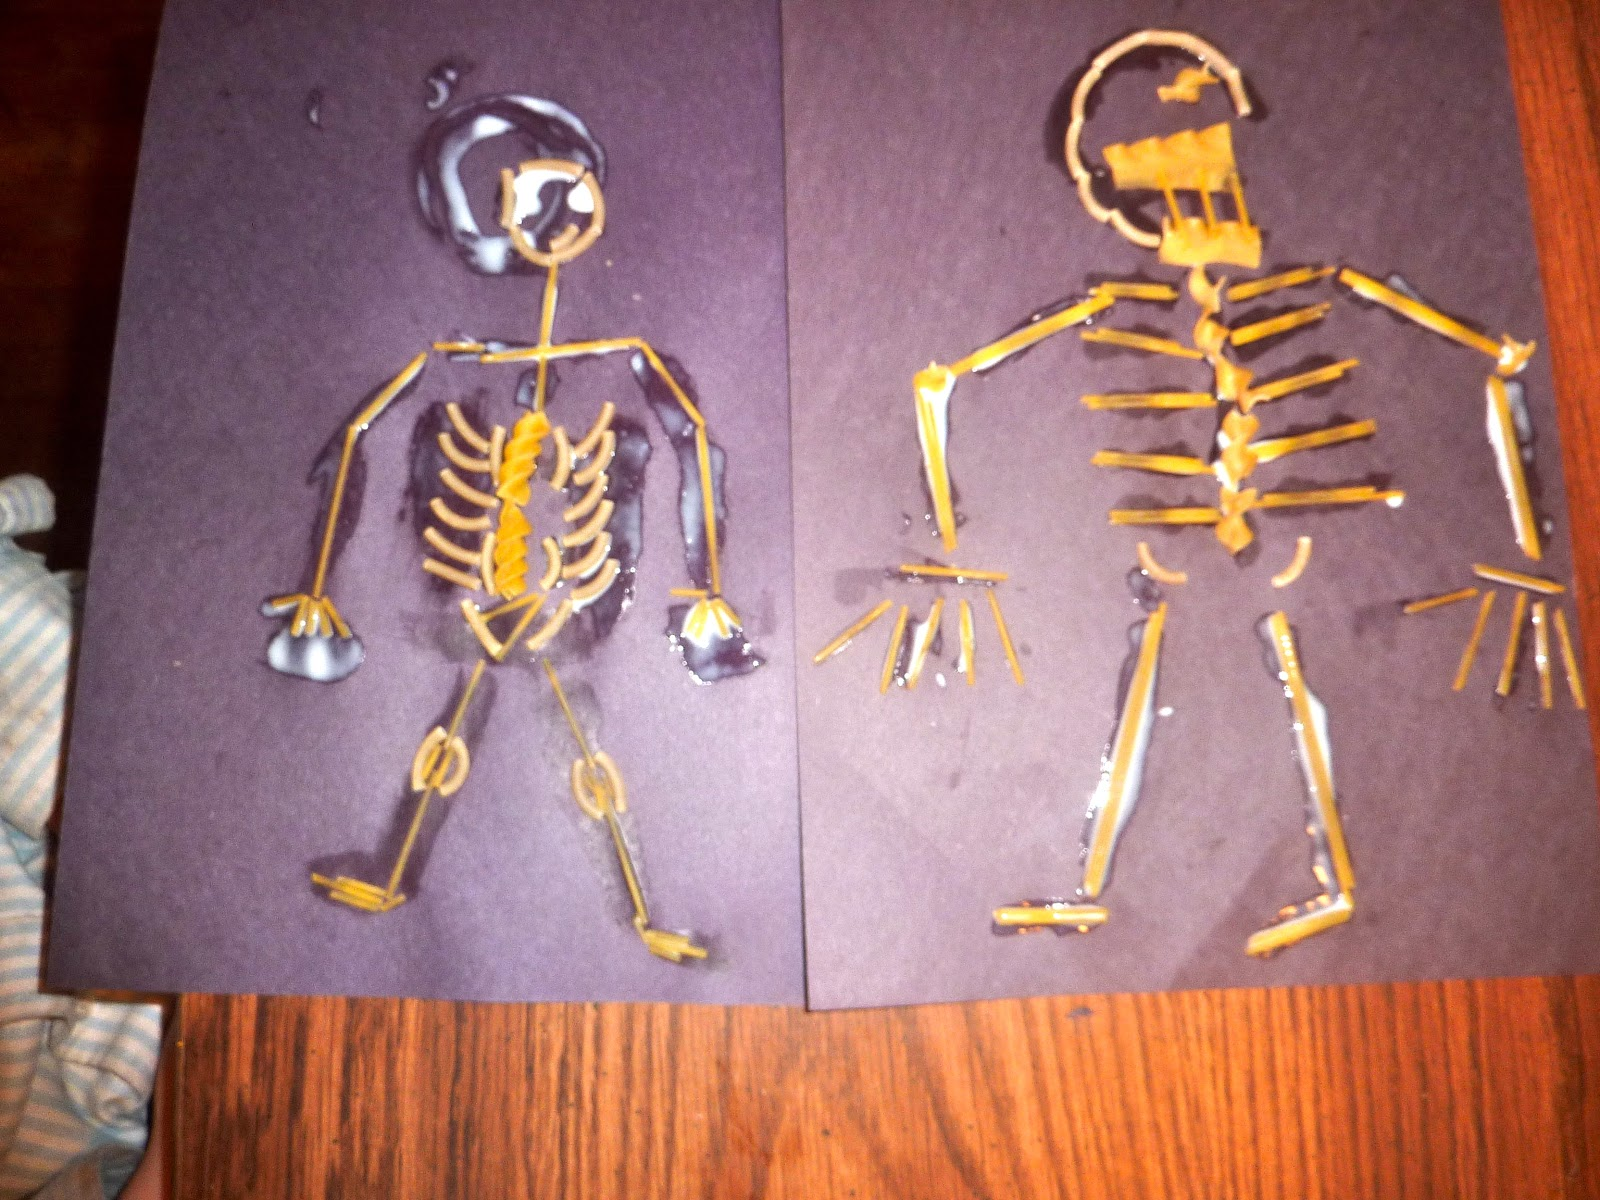 Anatomy Skeletal System Games Gallery Human Body Anatomy